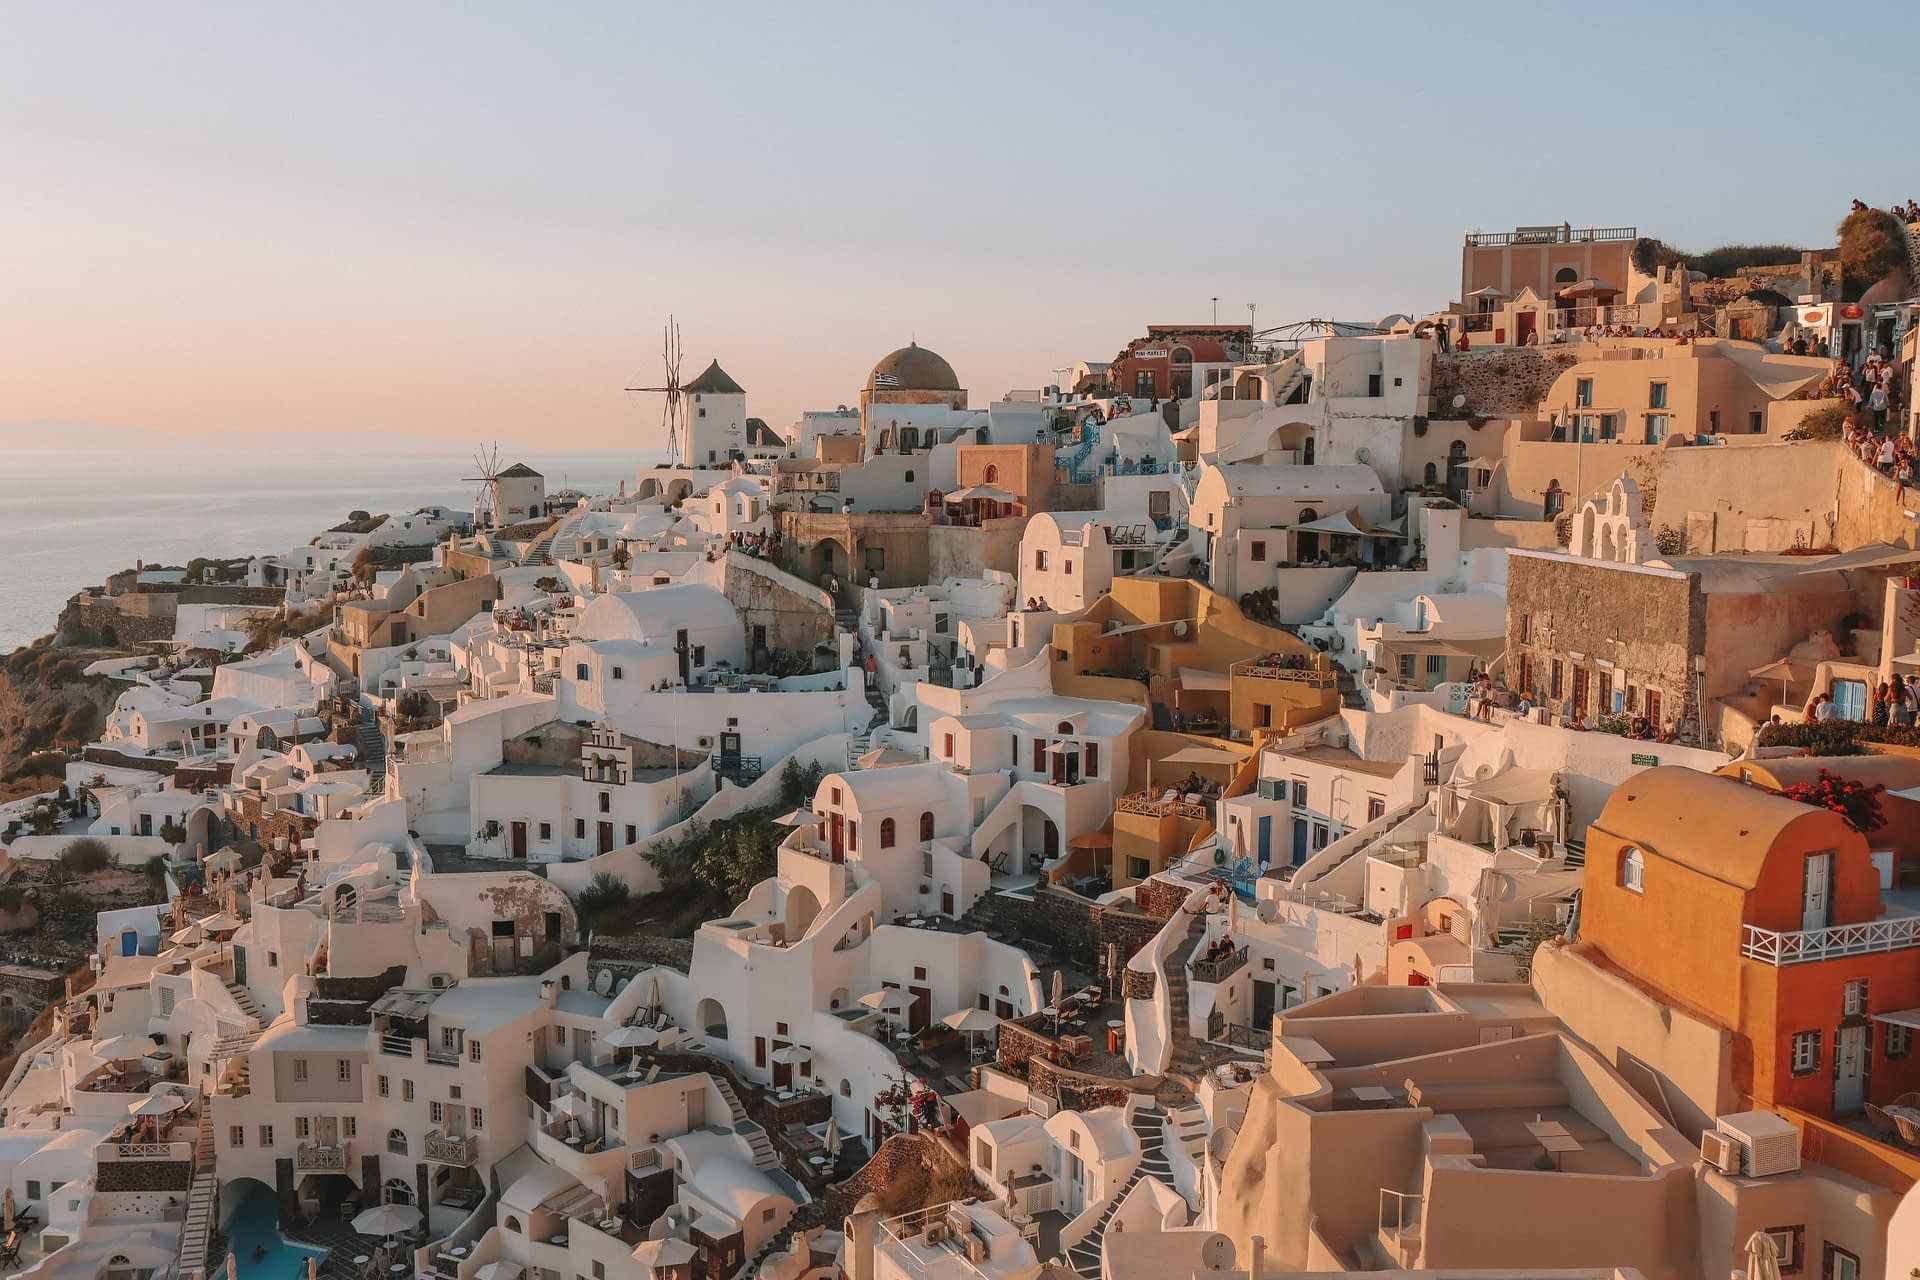 Oia buildings during sunset with a view from the Kastro